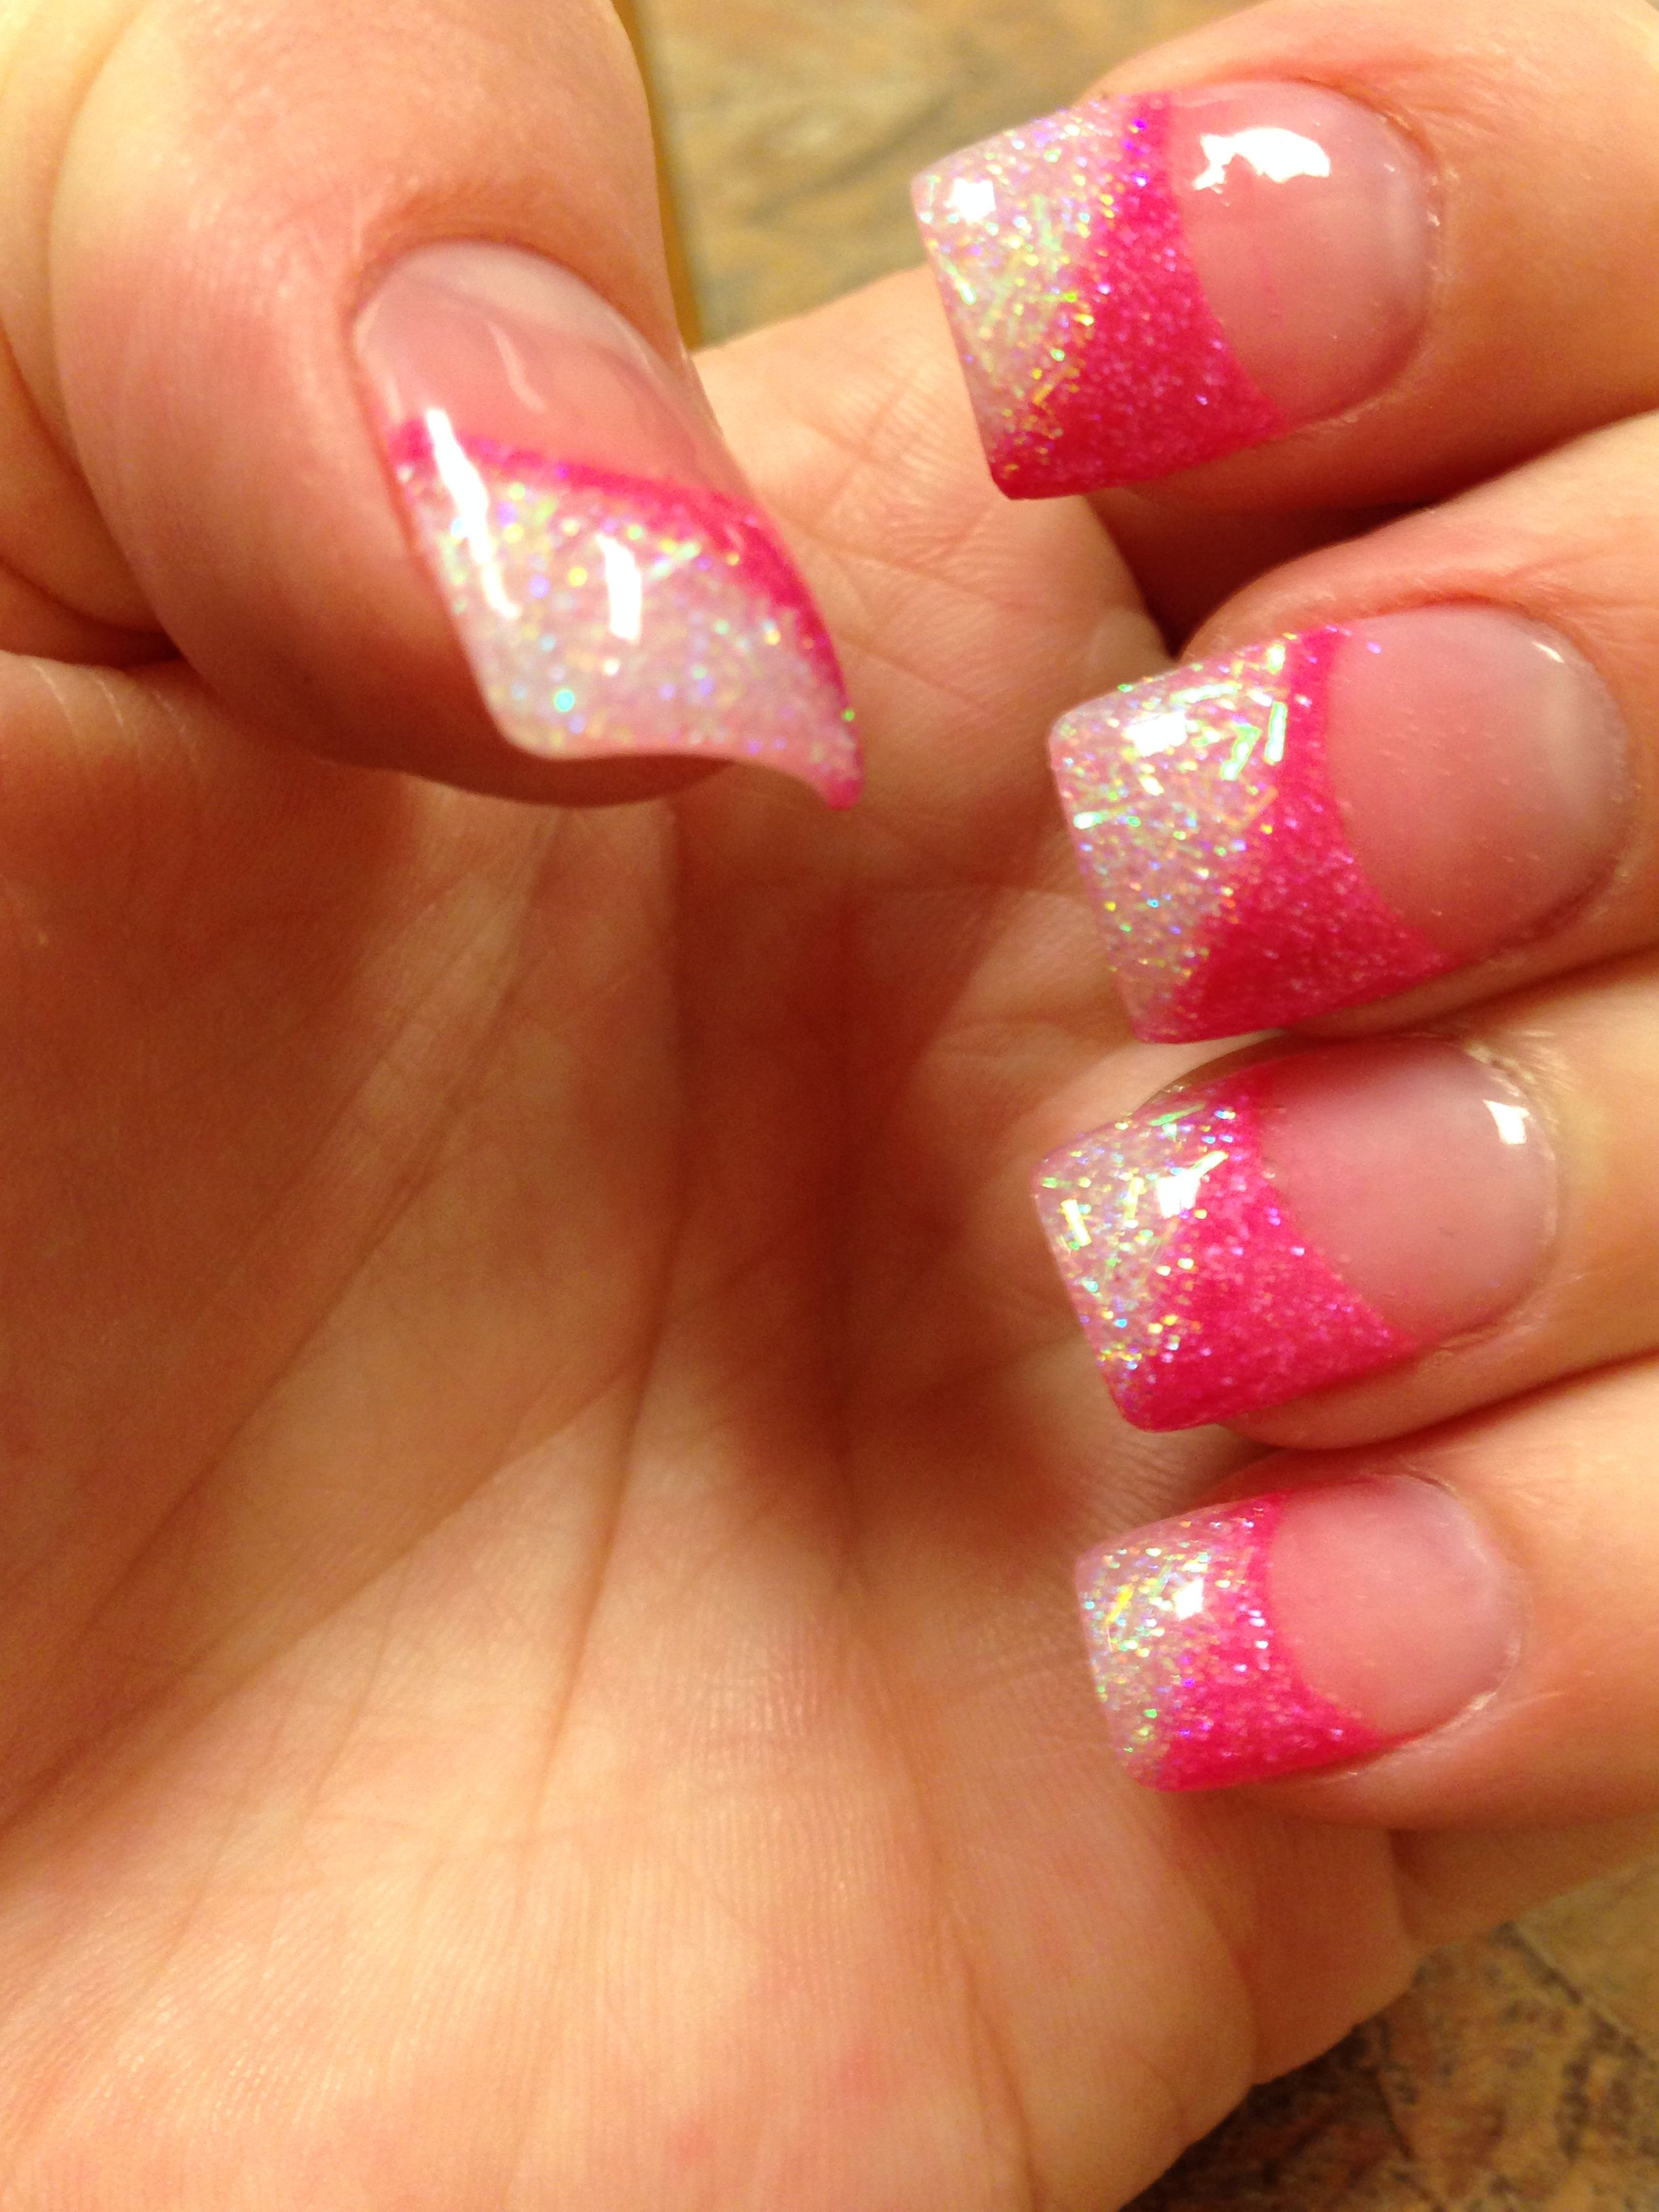 Pin By Tiffany Wold On Nails Coffin Nails Glitter Acrylic Nail Designs Glitter Nails